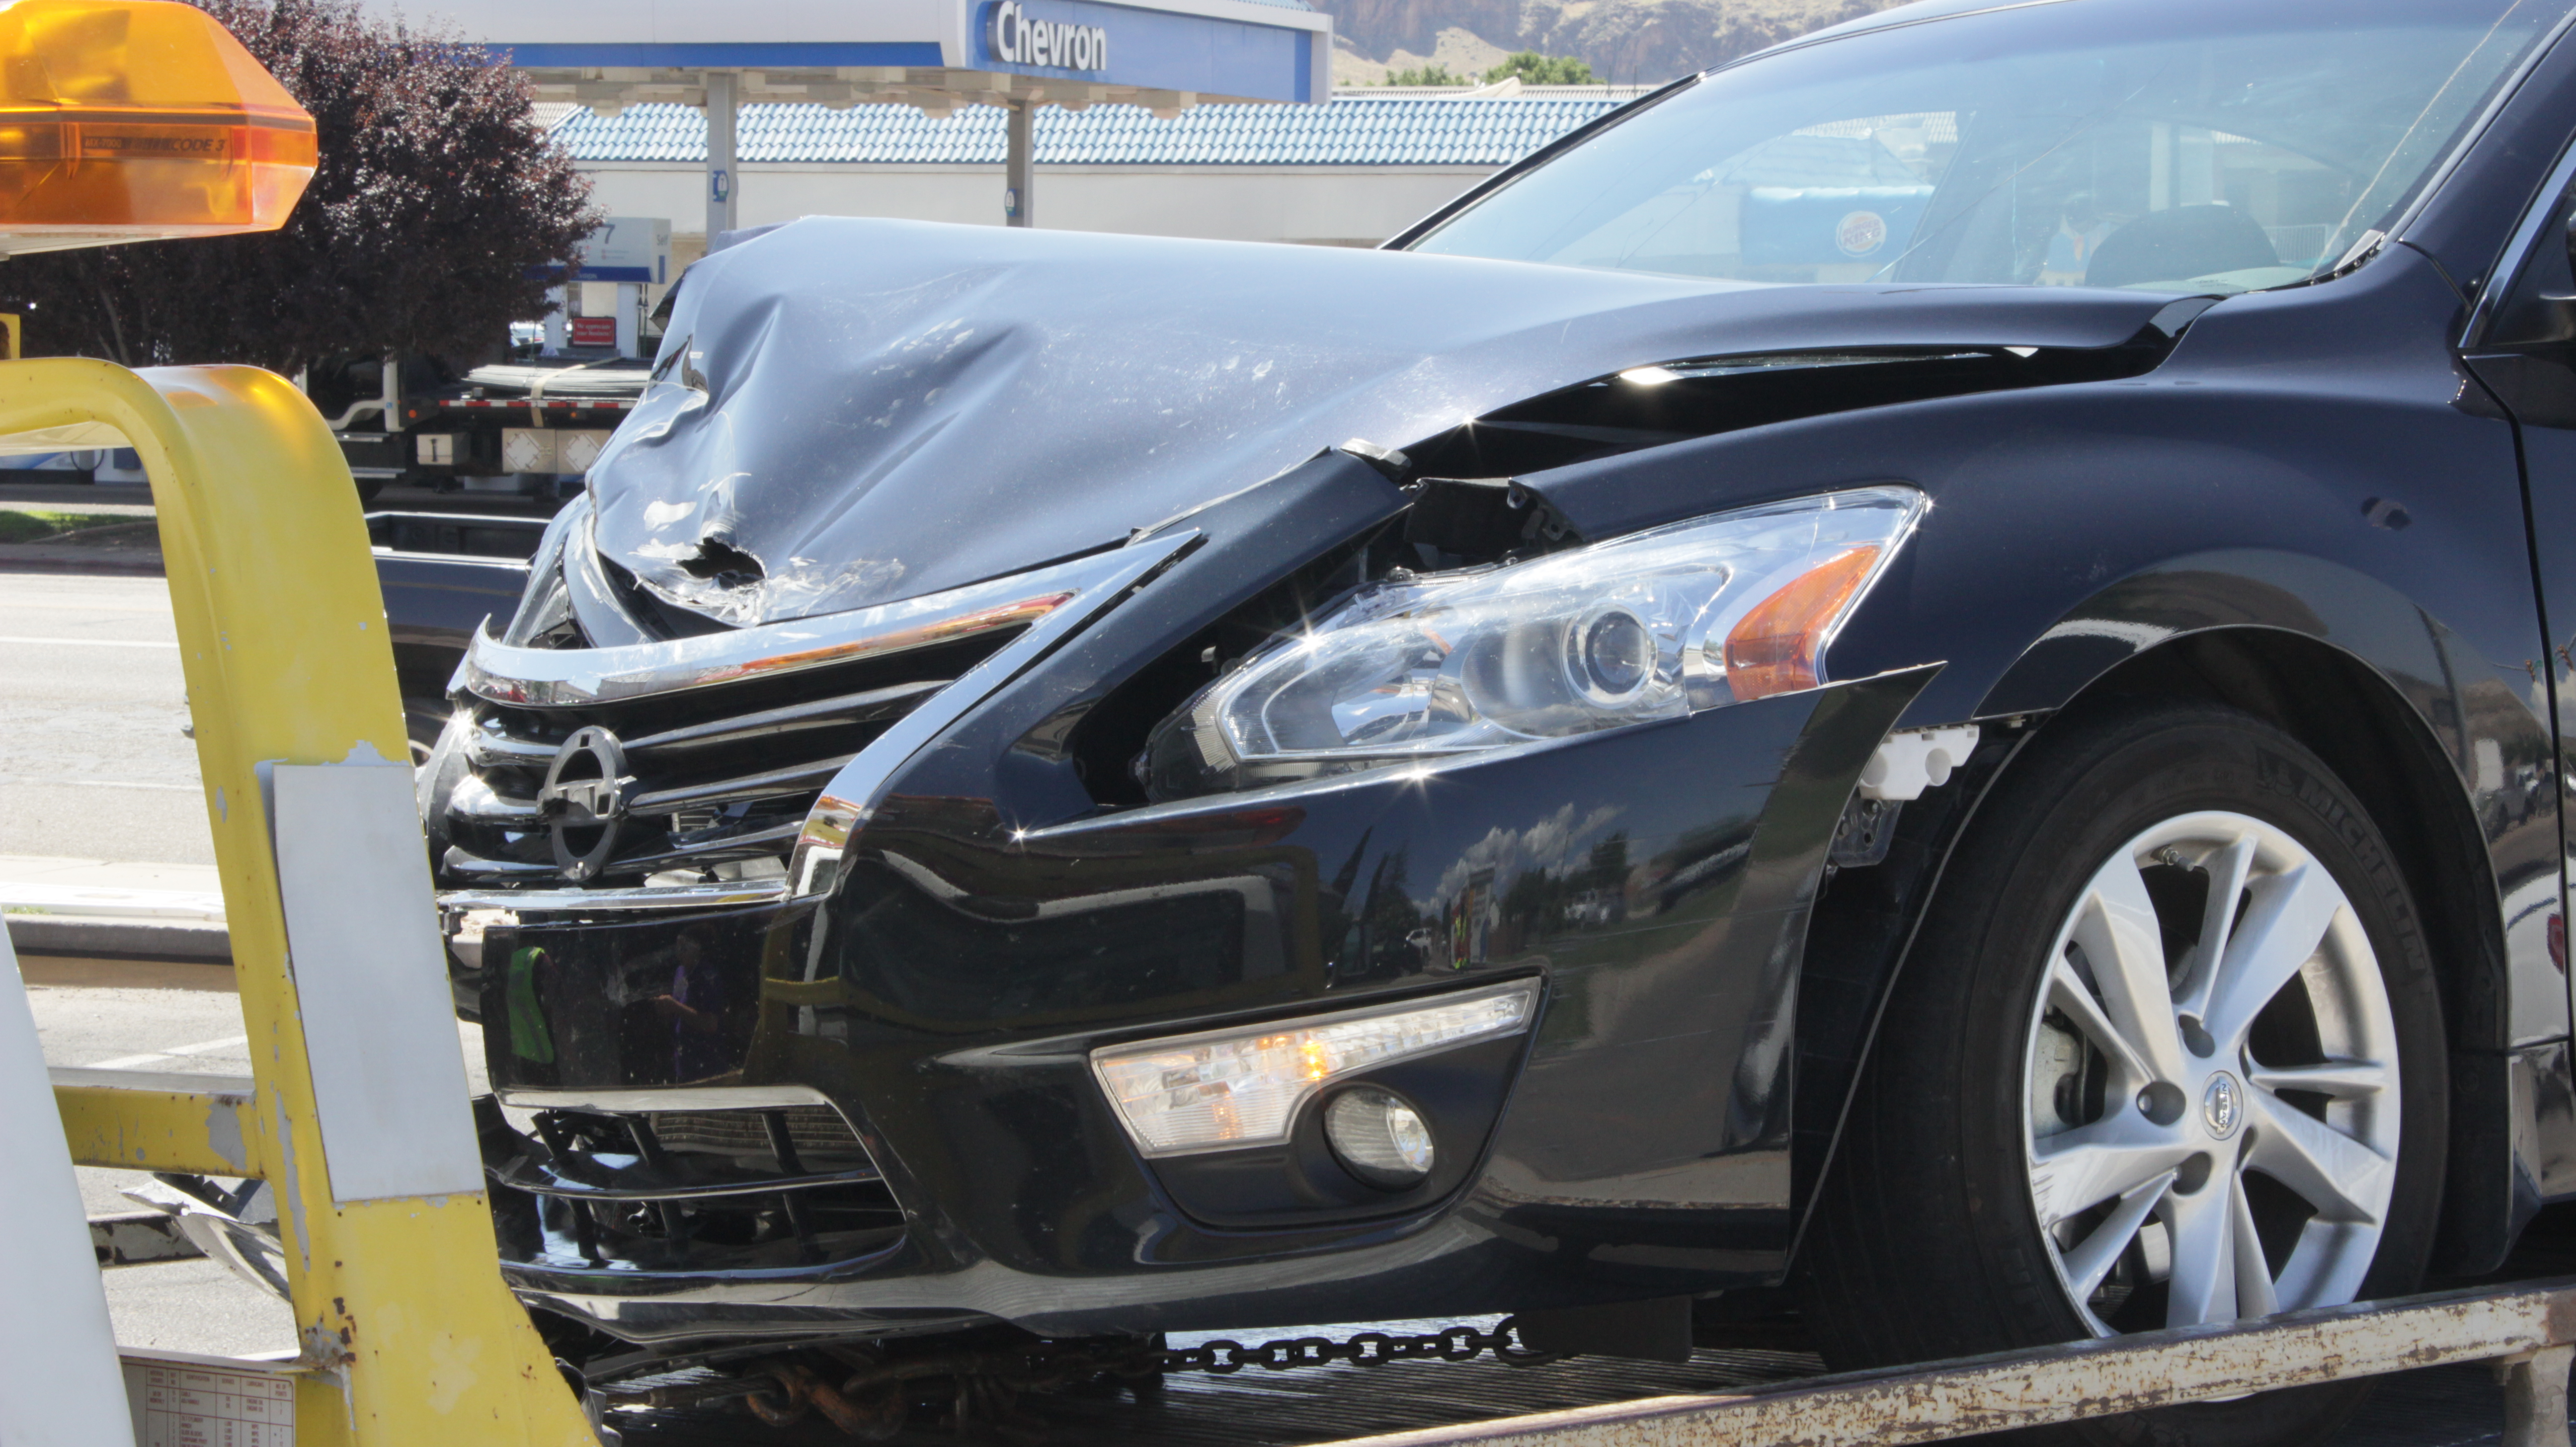 A collision between a Nissan Altima and a U-Haul moving truck left the Nissan worse for wear Friday afternoon, Aug. 12, Hurricane, Utah | Photo by Don Gilman, St. George News